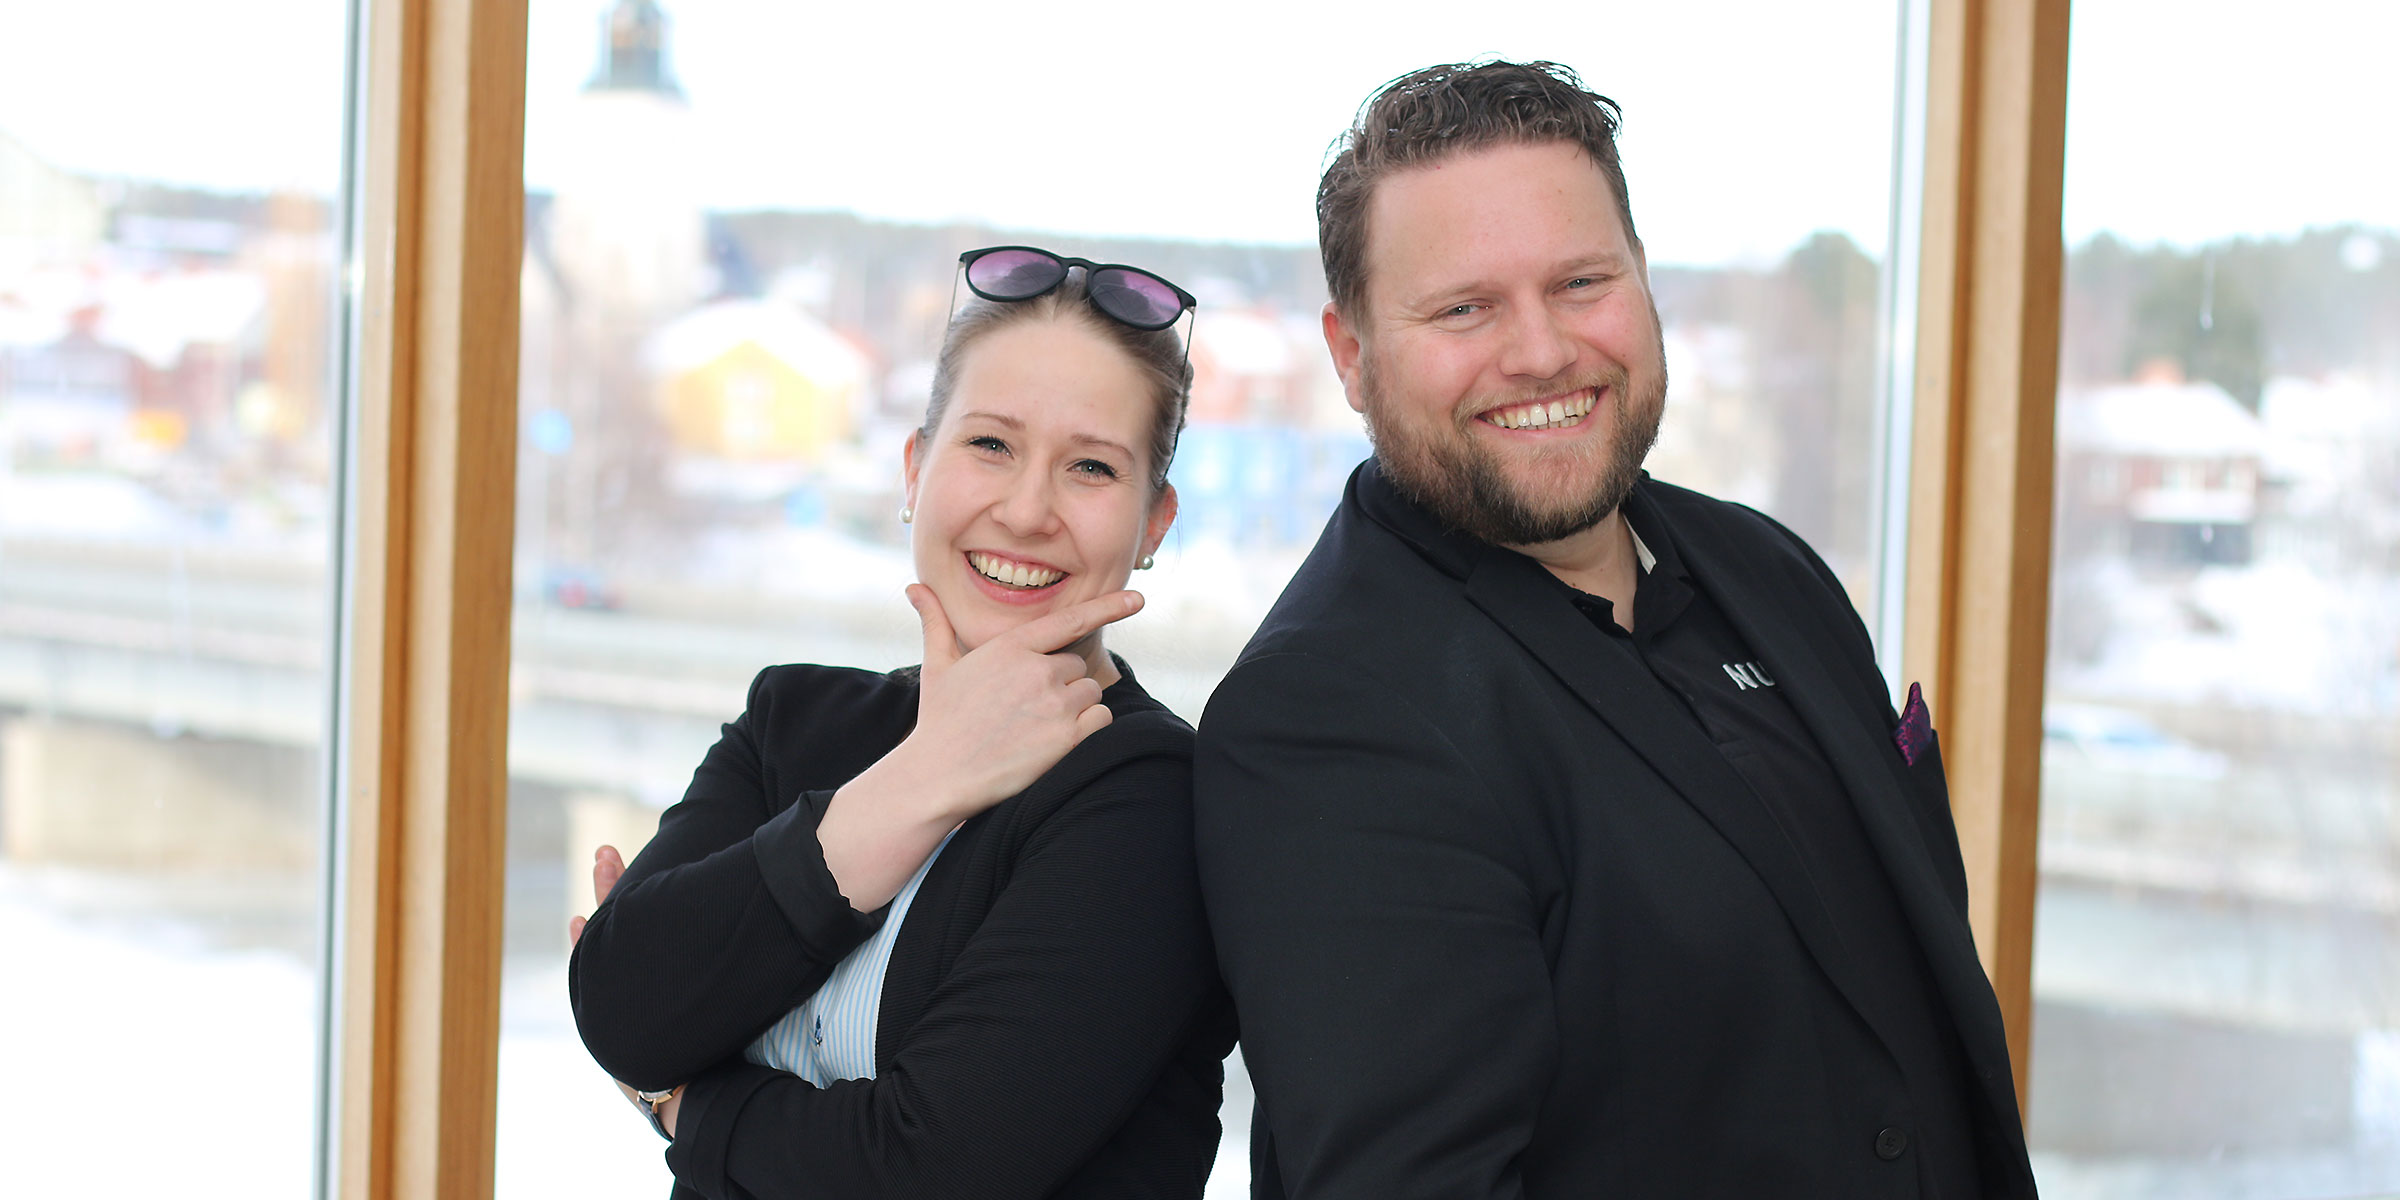 For Meiju Vartiainen and Harry van der Veen, the pay it forward-culture in the startup world is about sharing their experiences and their time.